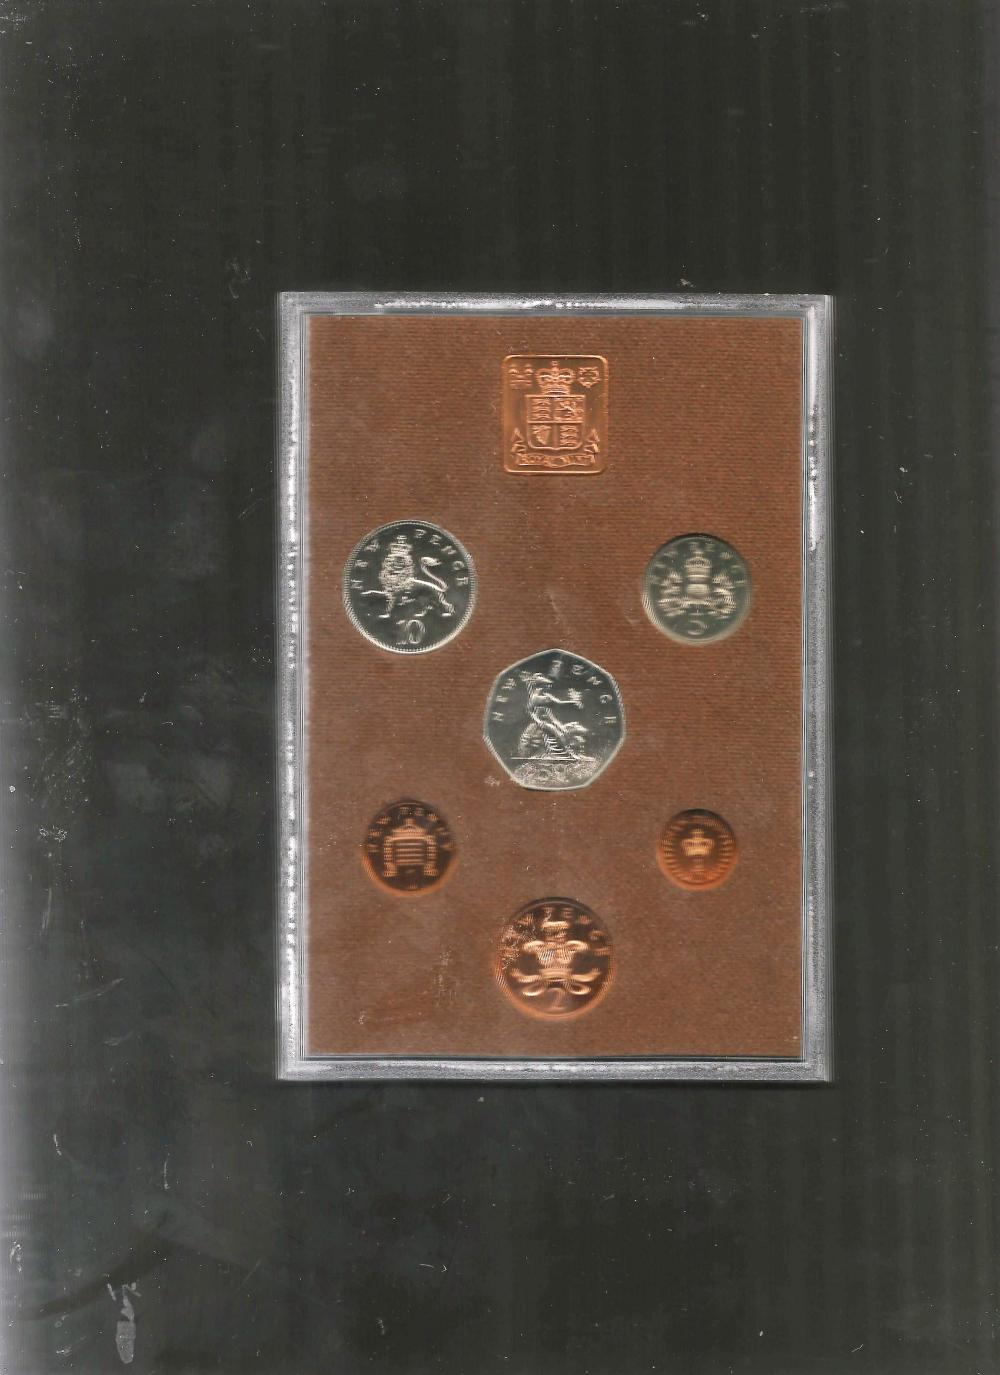 UK GB 1974 Proof coin set, mounted in a plastic display case, with a protective outer case. The